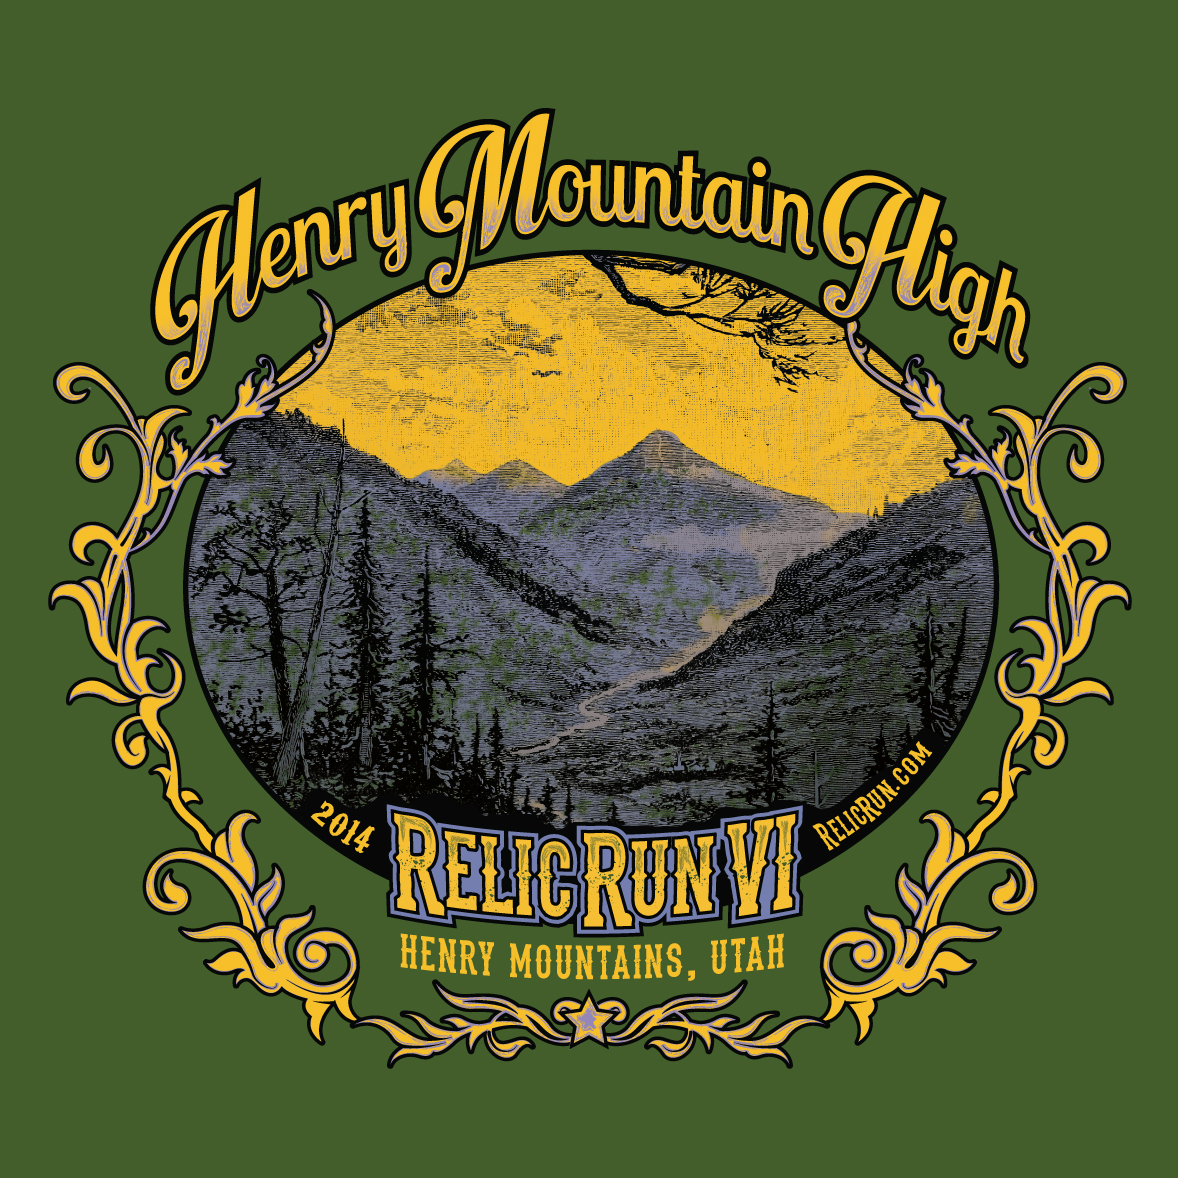 Relic-Run-2014-green.jpg